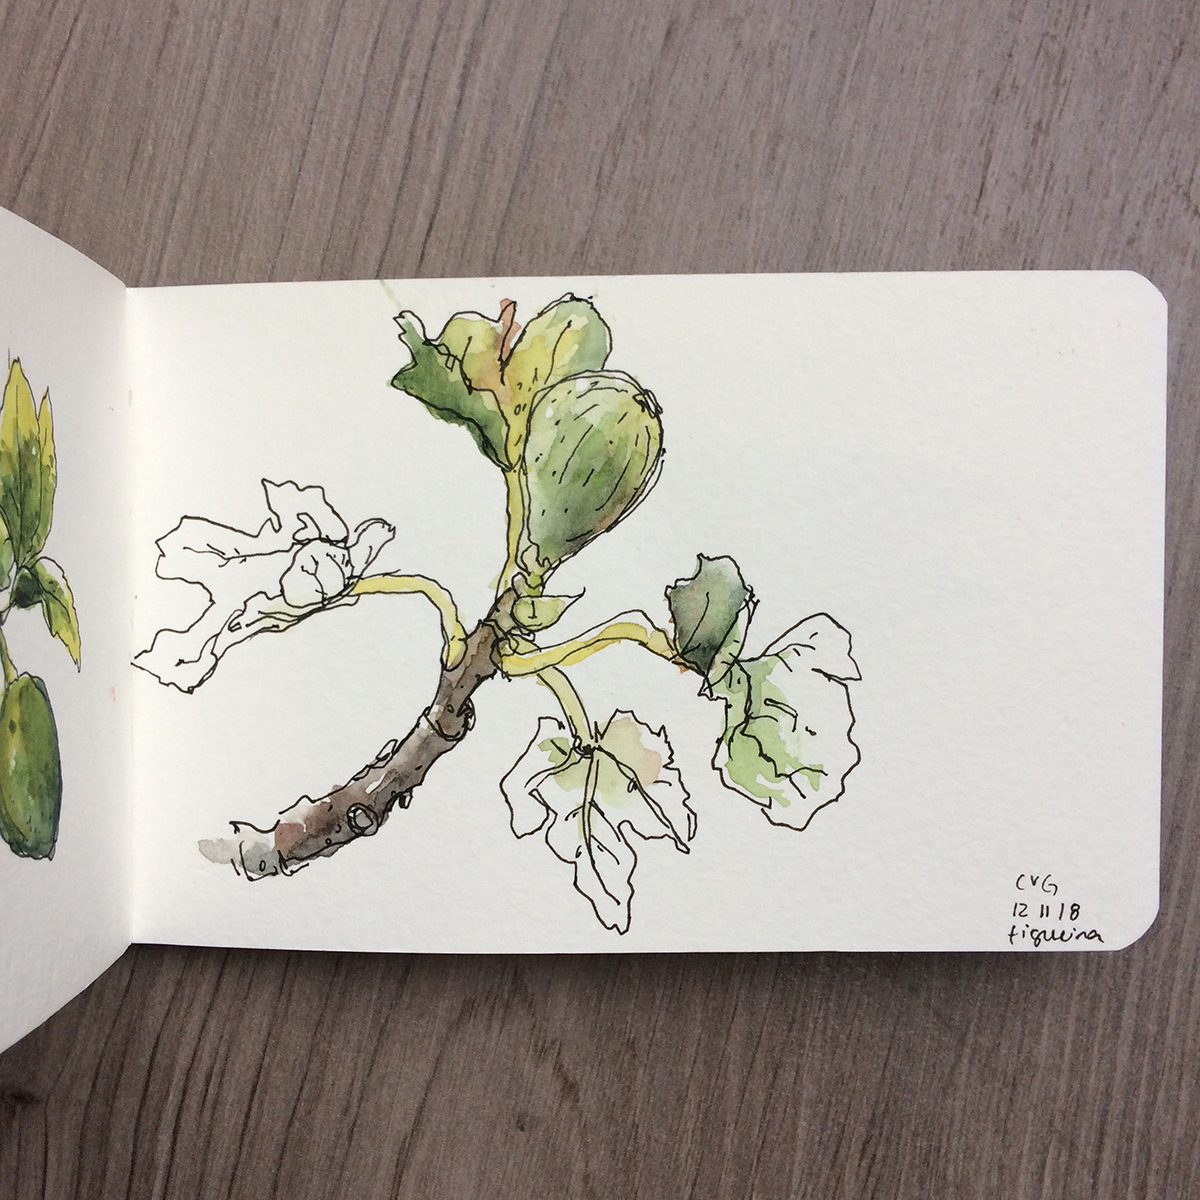 ana romao _ pen and watercolor fig tree branch sketch